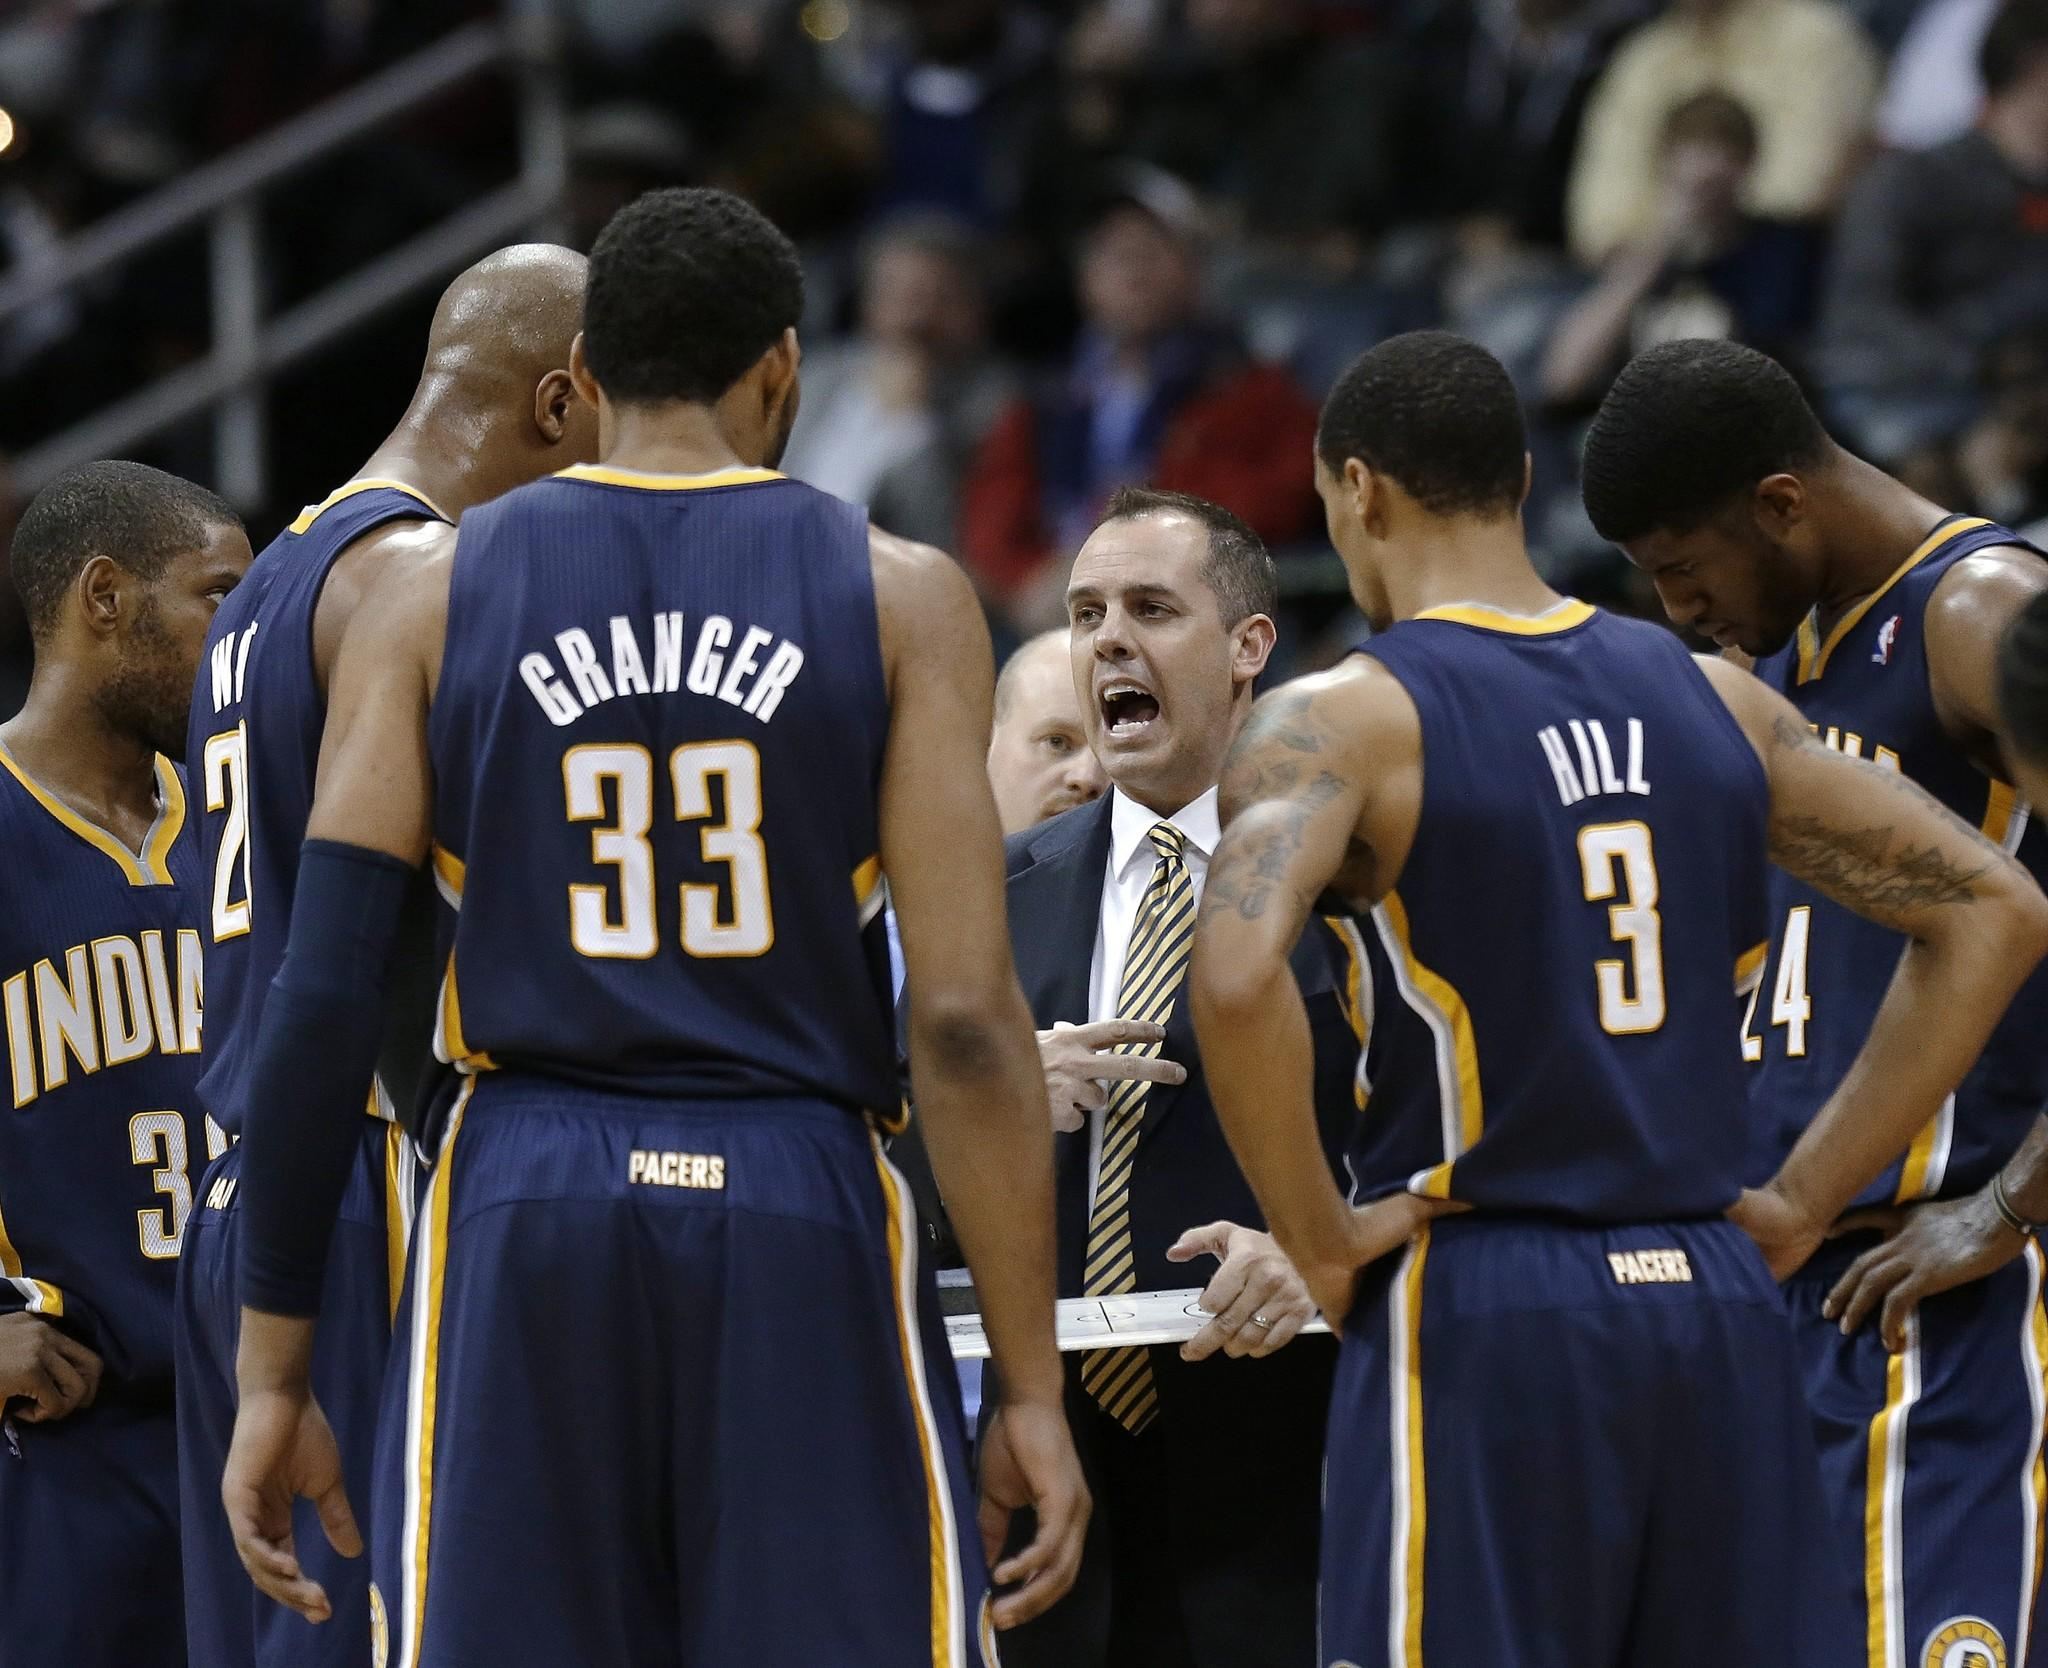 The Indiana Pacers take the top spot in this week's rankings after starting the season with a record of 29-7.